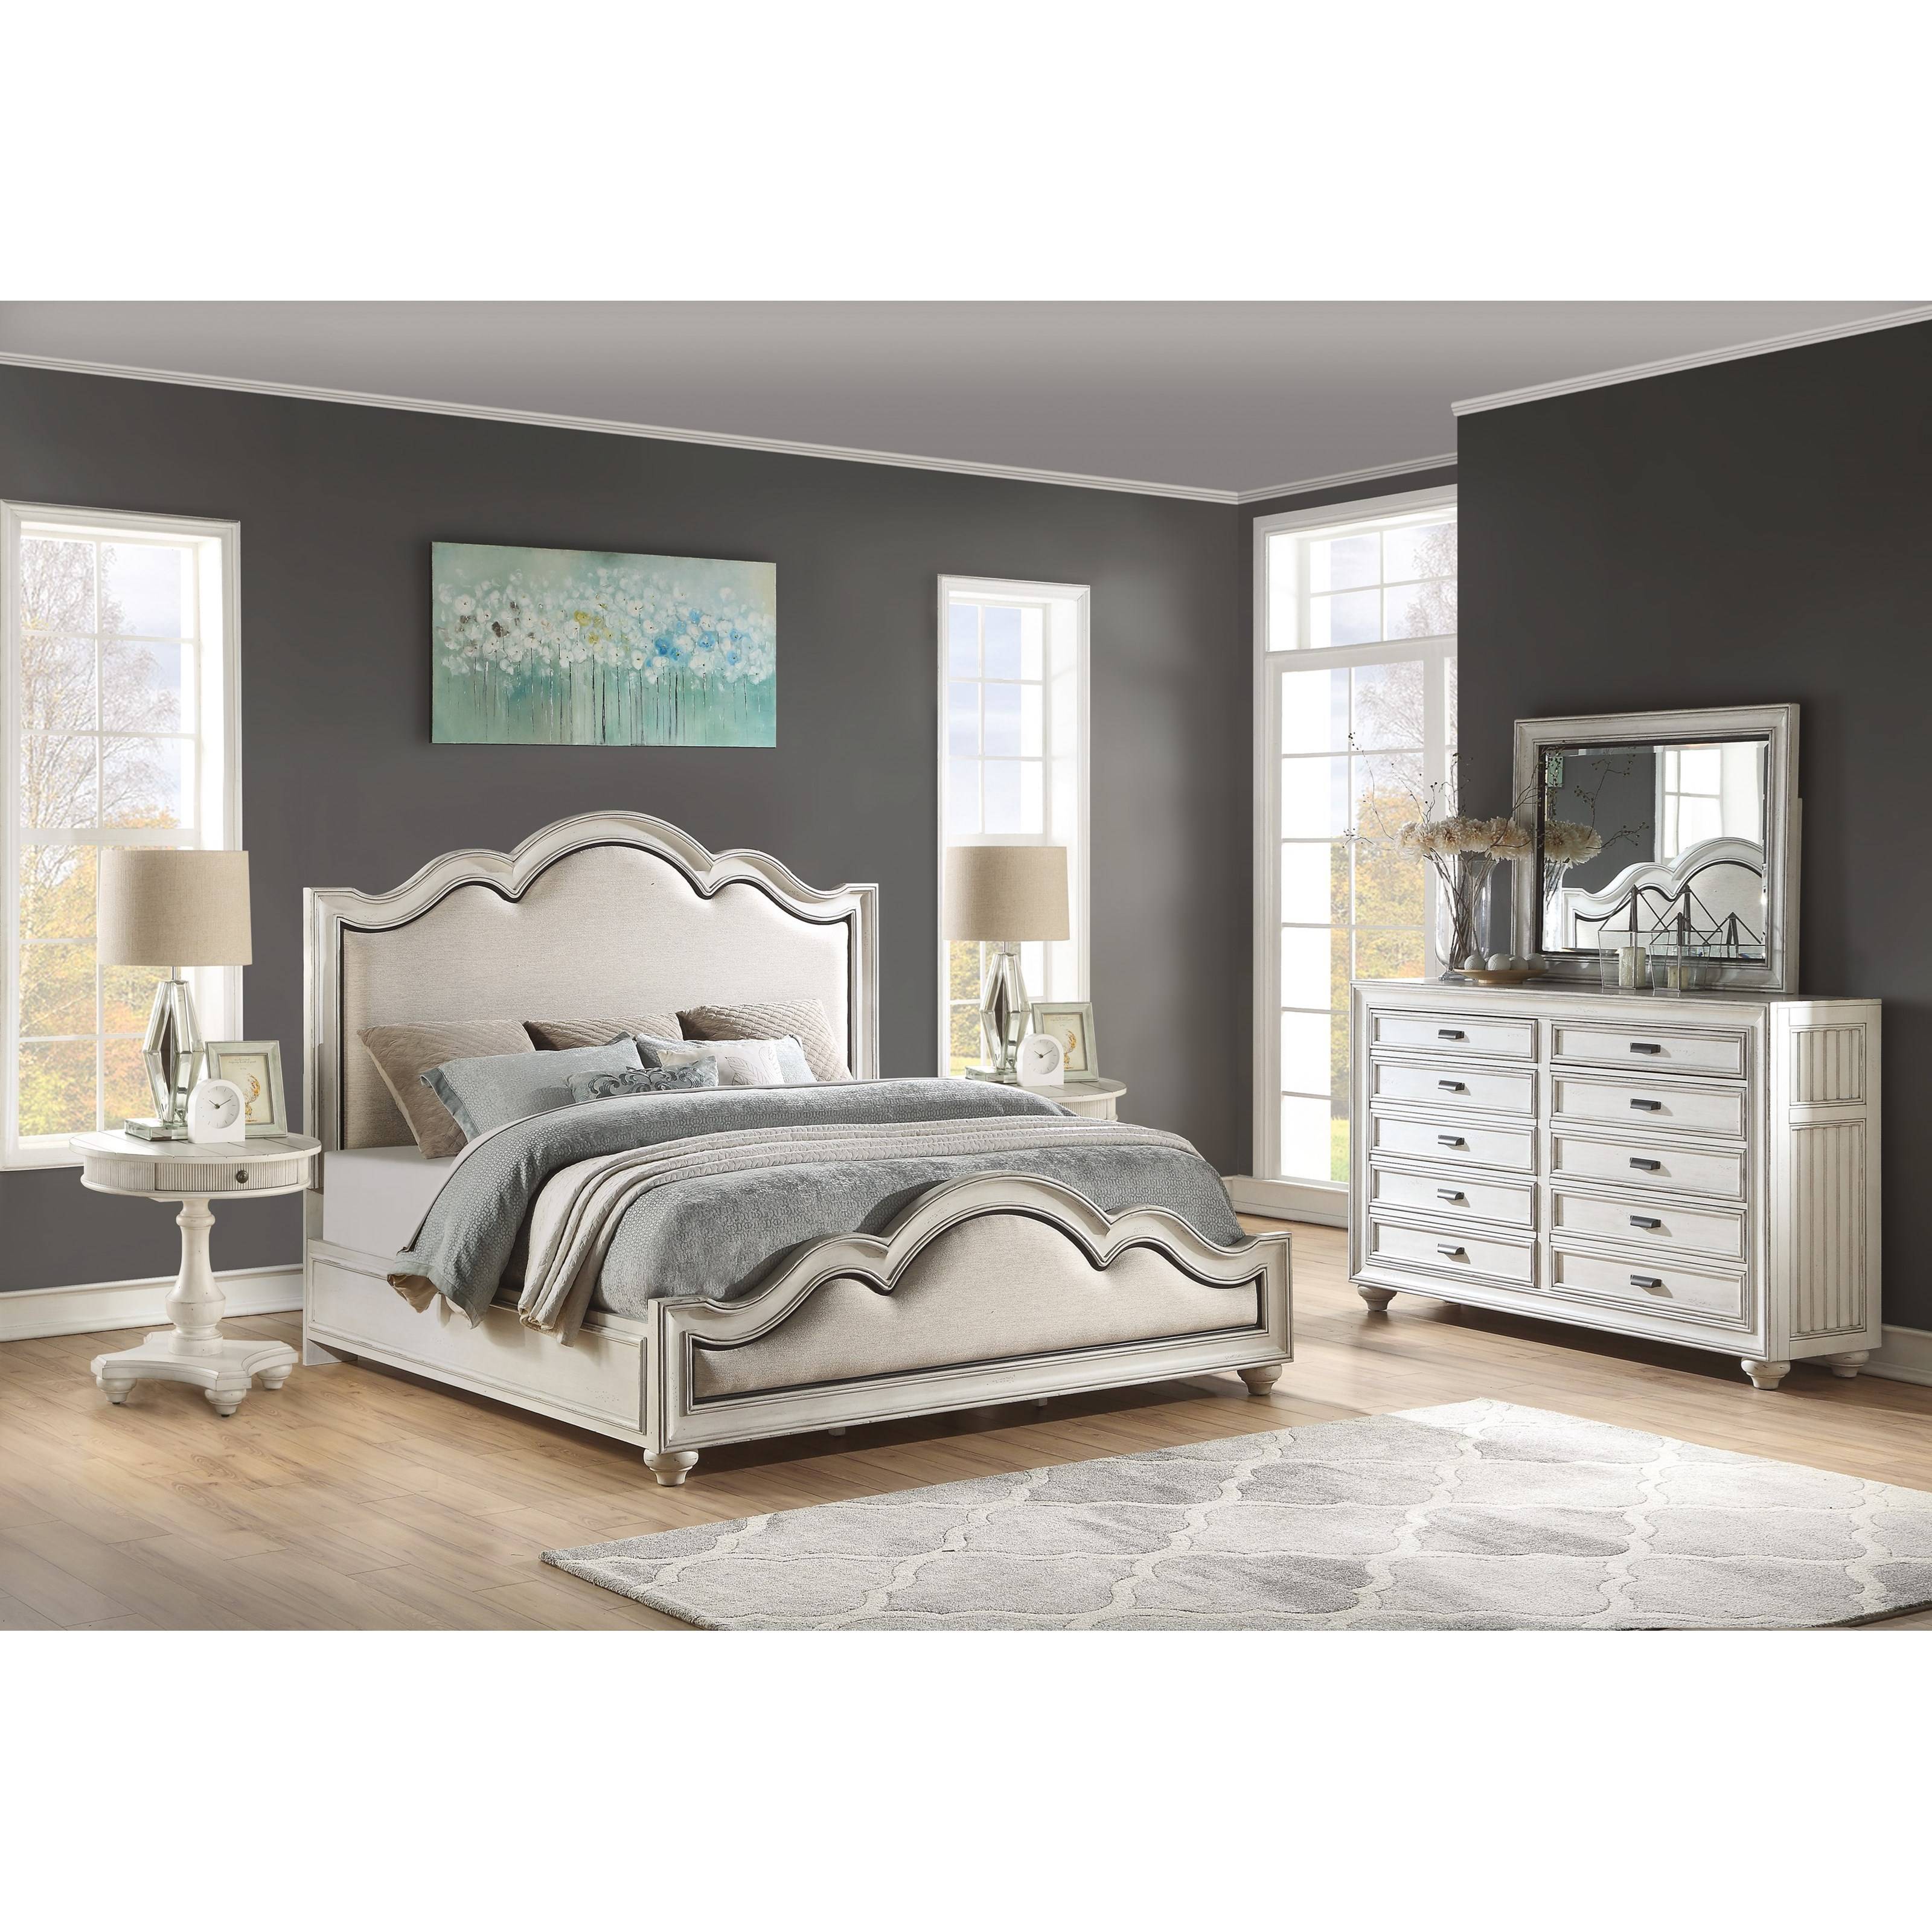 Harmony California King Bedroom Group by Flexsteel Wynwood Collection at Westrich Furniture & Appliances